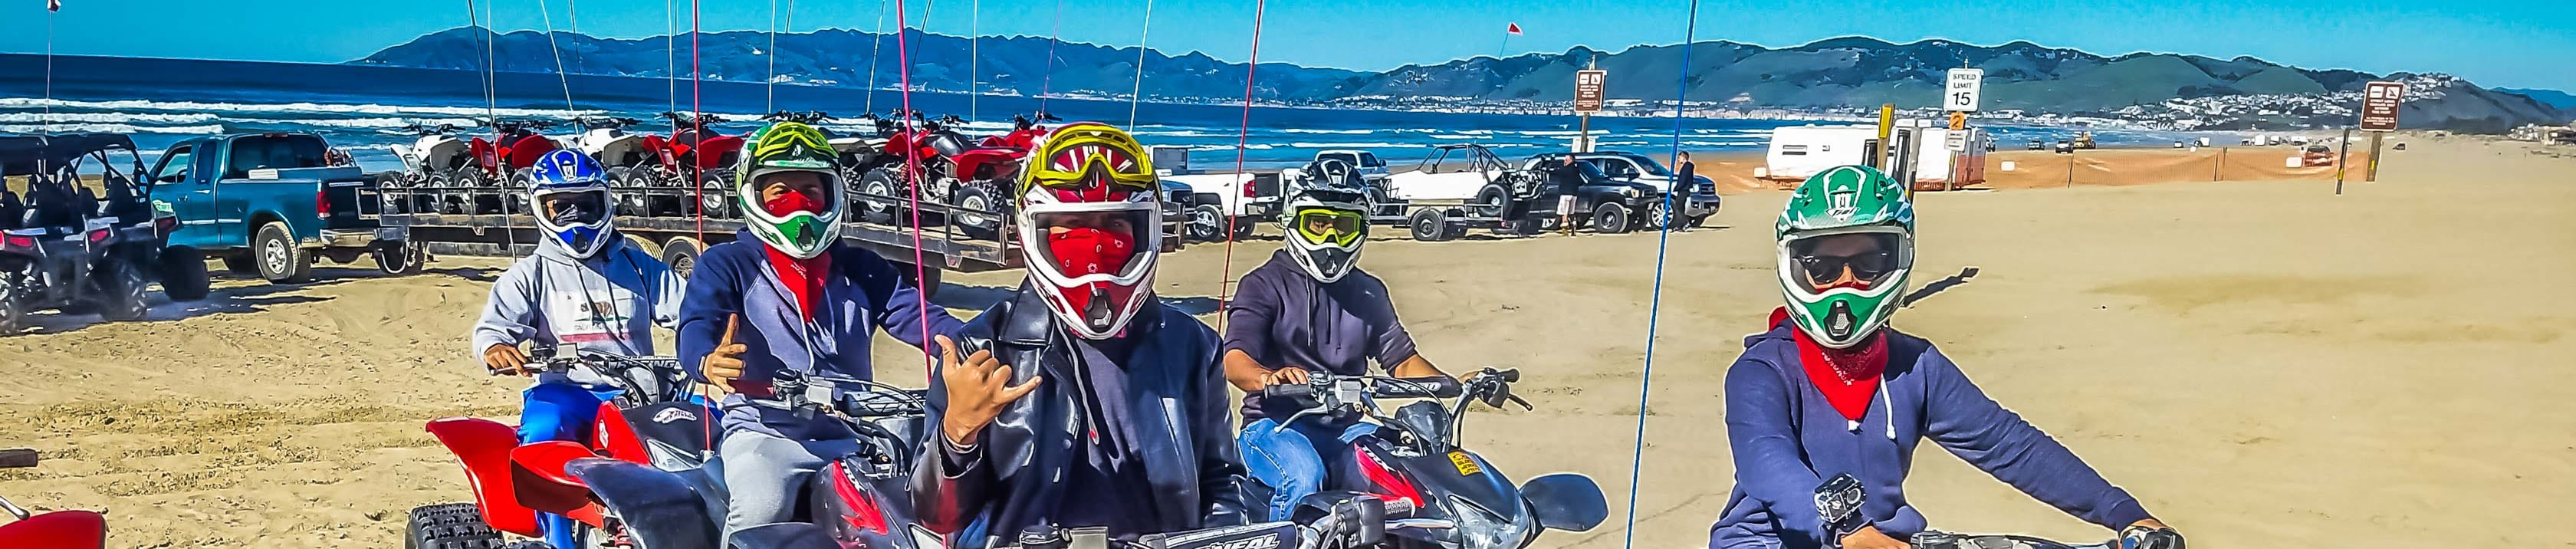 Group of riders on ATVs